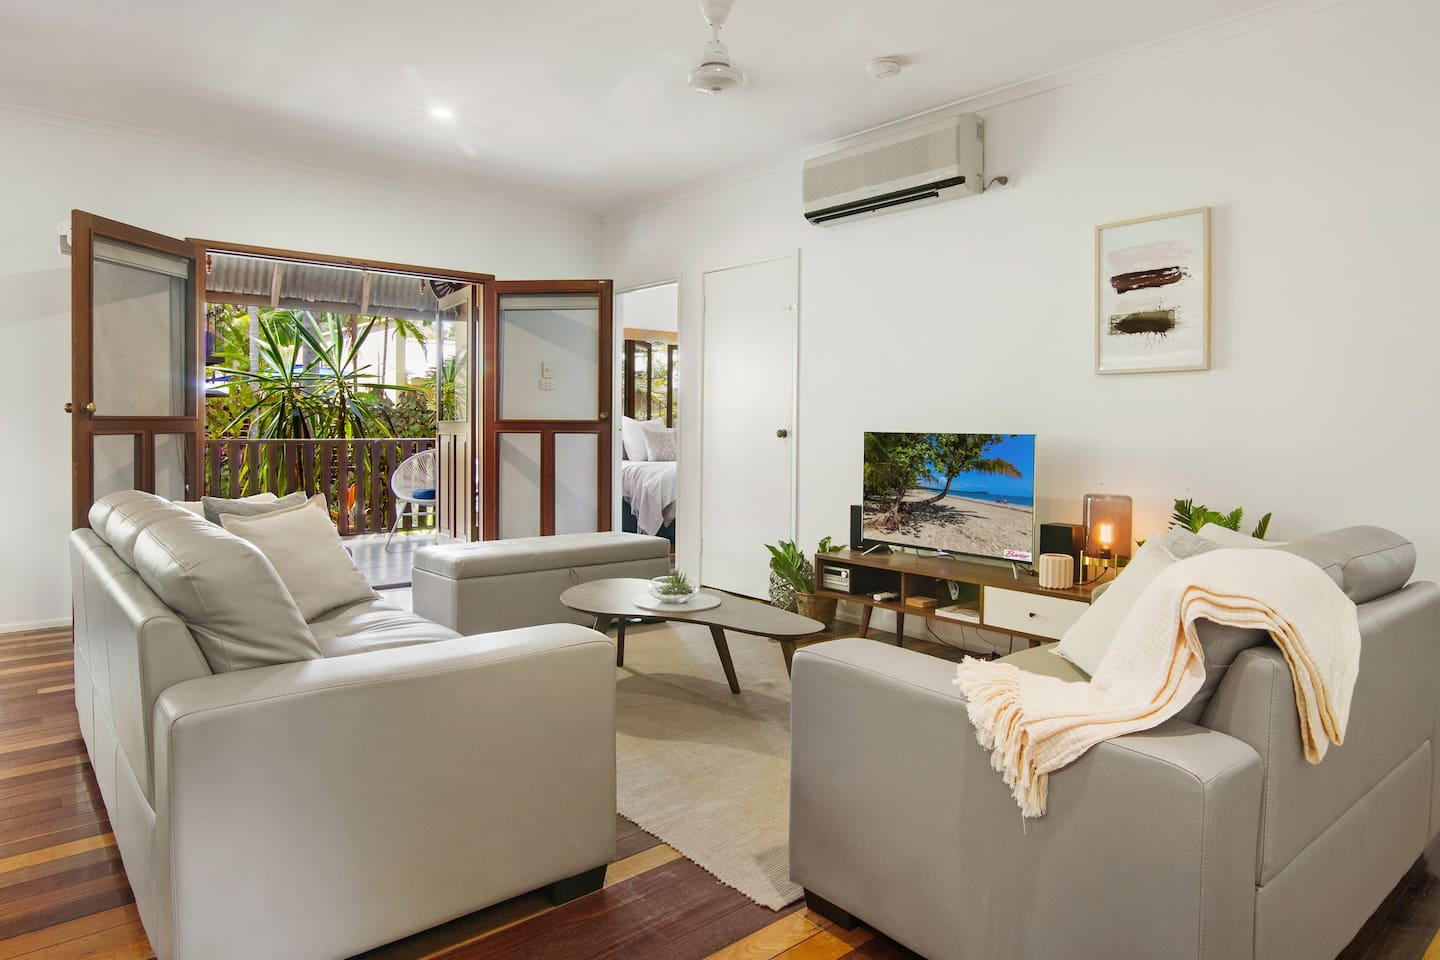 Open plan living room looking out onto front verandah